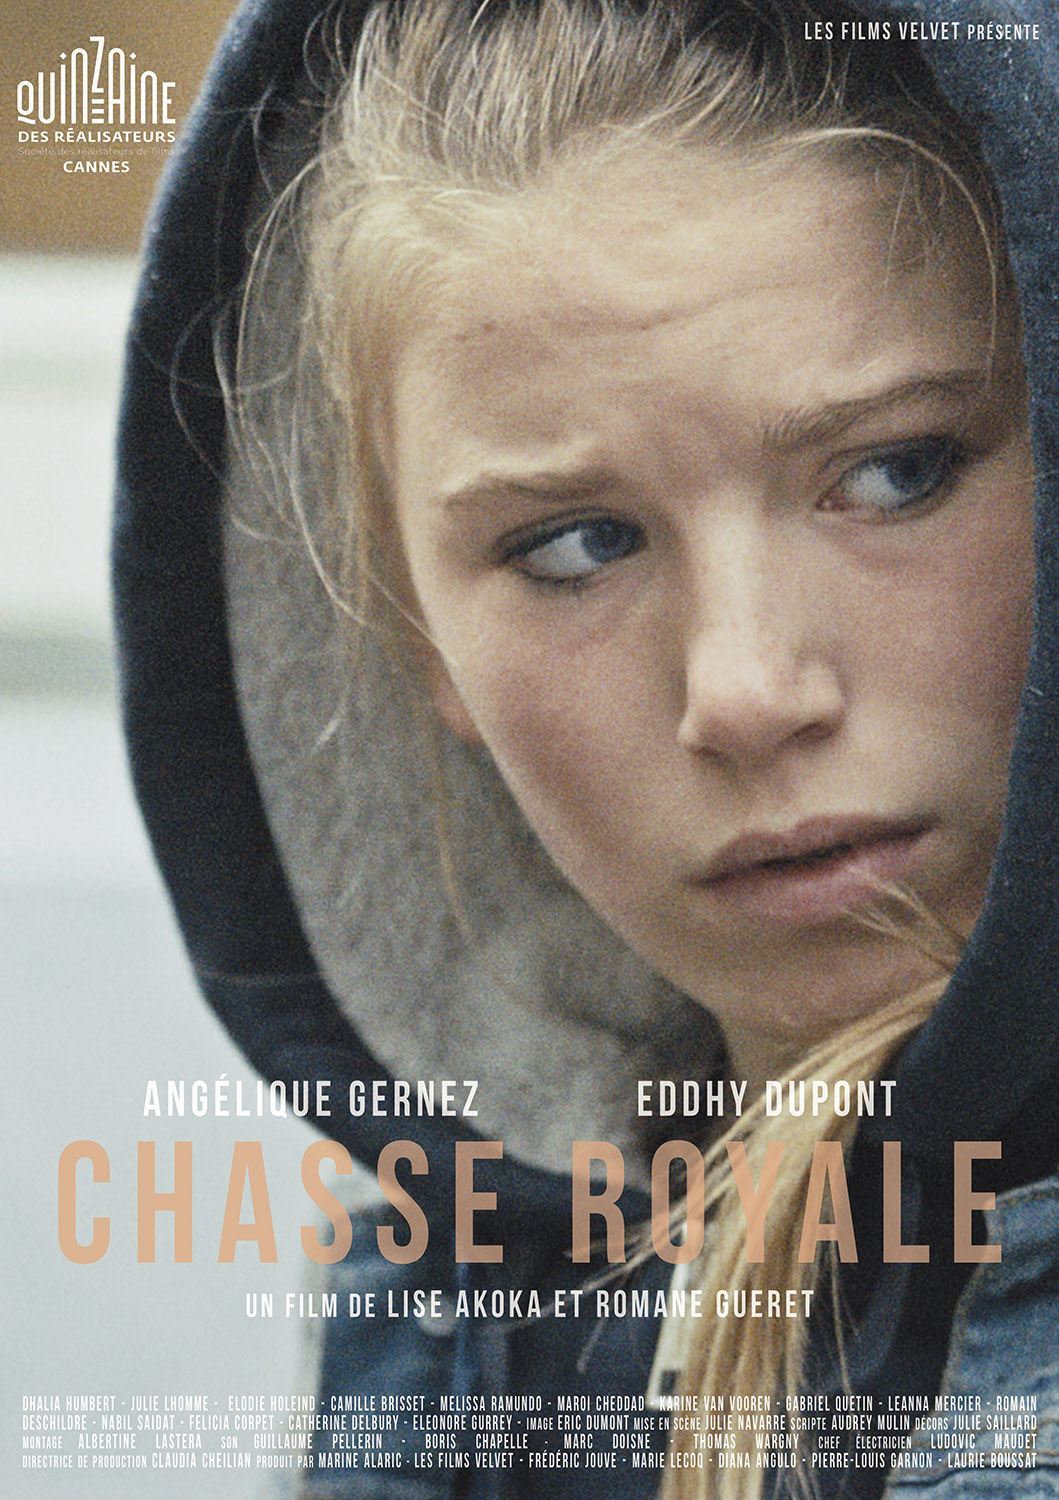 AFFICHE CHASSE ROYALE